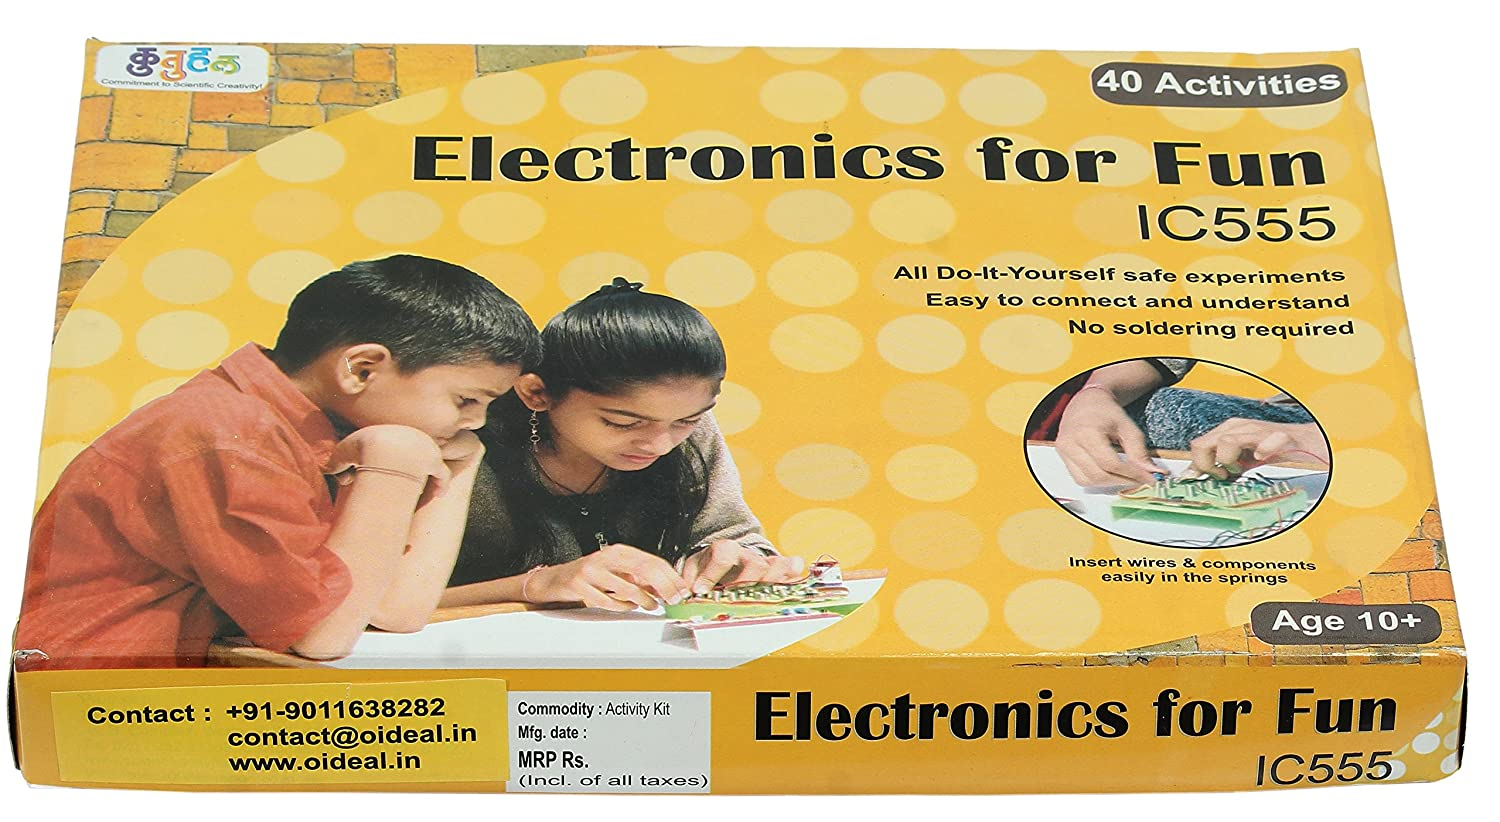 Buy do it yourself electronics for fun advance p2 educational buy do it yourself electronics for fun advance p2 educational learning toy online at low prices in india amazon solutioingenieria Choice Image